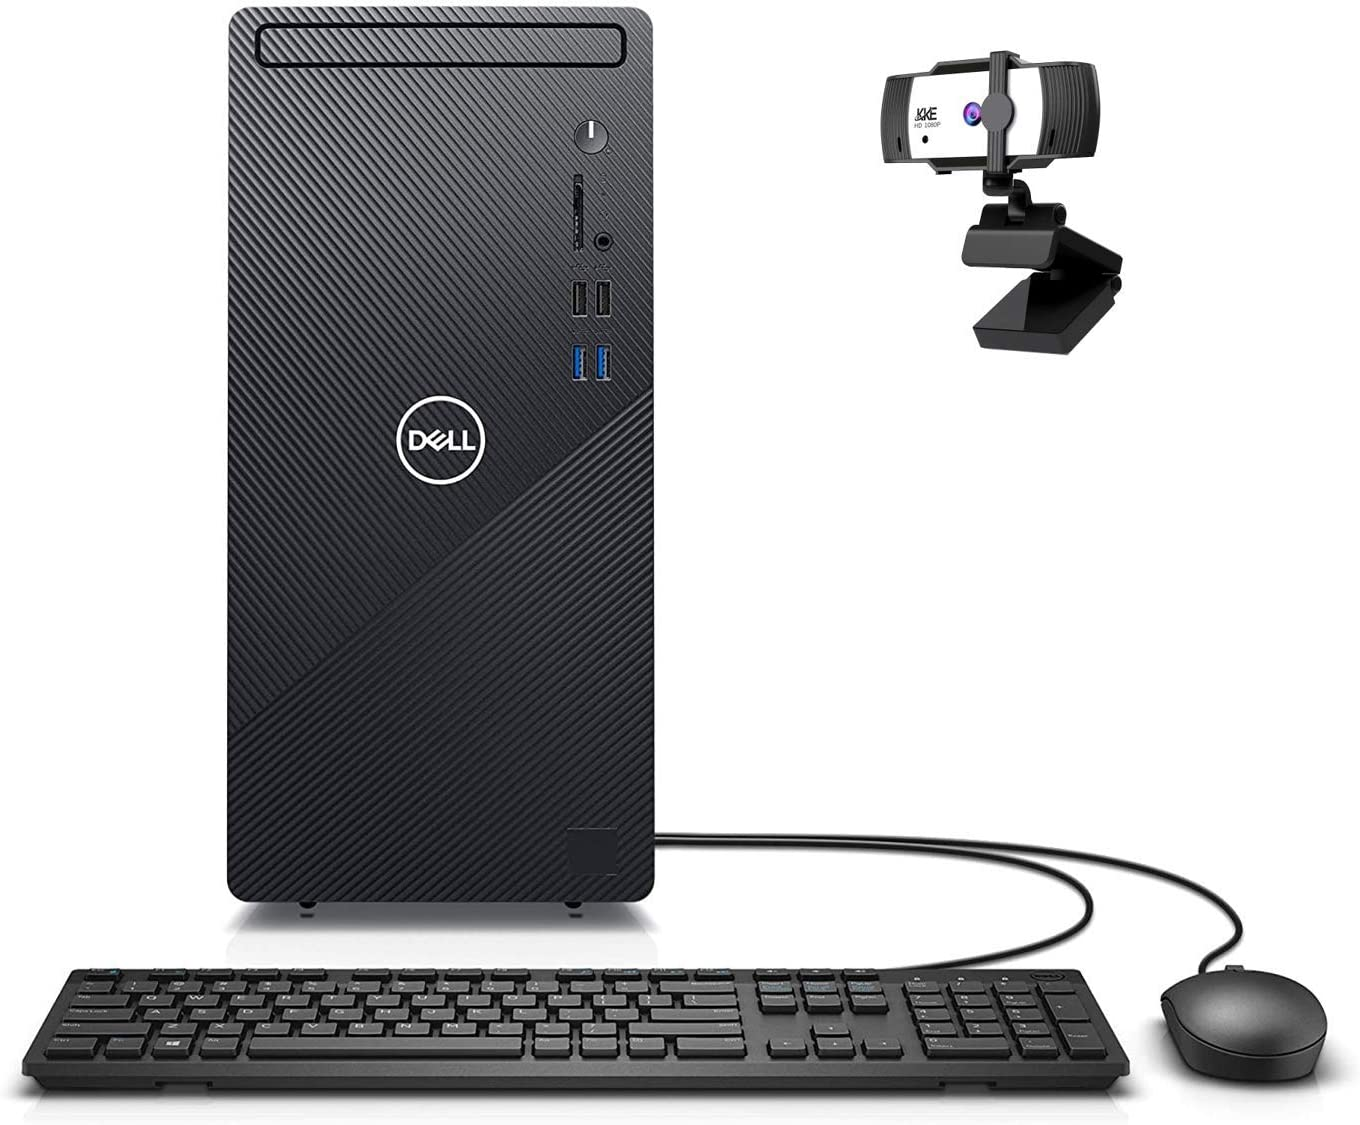 Dell Newest Inspiron High Performance Desktop, Intel Core i7-10700, 32GB DDR4 Memory, 1TB PCIe Solid State Drive, WiFi, HDMI, Wired Keyboard&Mouse, KKE 1080P Webcam, Windows 10